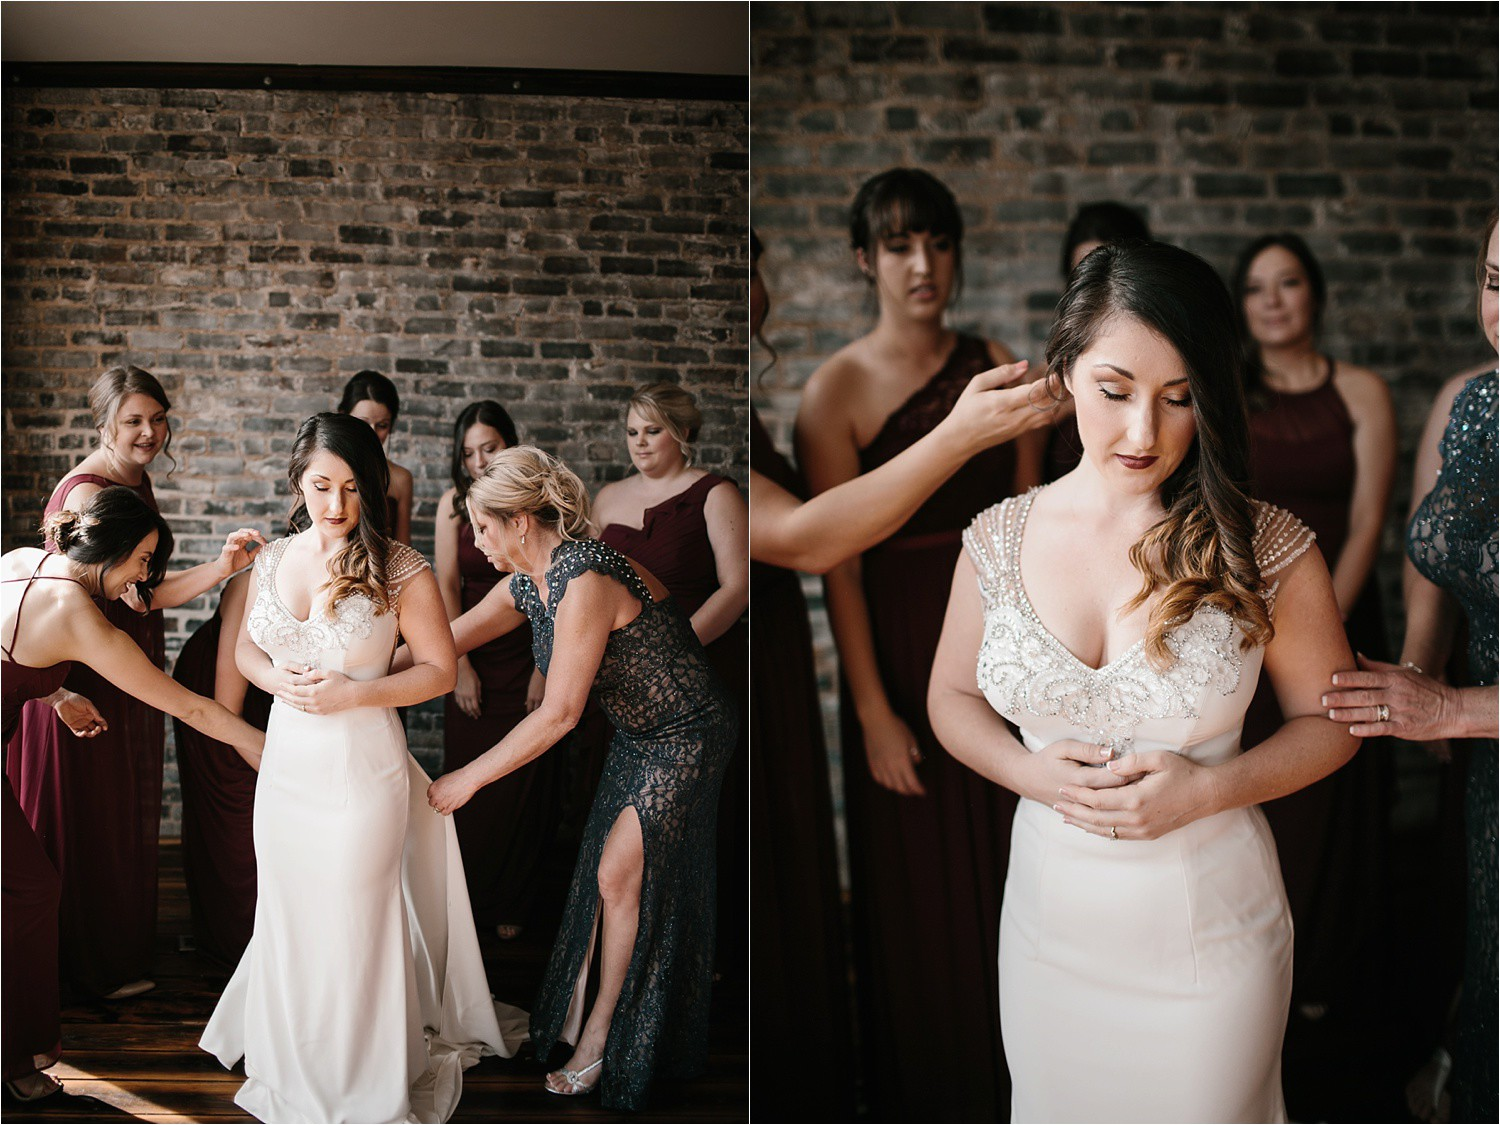 whittney-drew-__-an-intimate-wine-and-navy-wedding-in-an-industrial-venue-at-loft-123-in-paris-tx-by-north-texas-wedding-photographer-rachel-meagan-photography-_-016